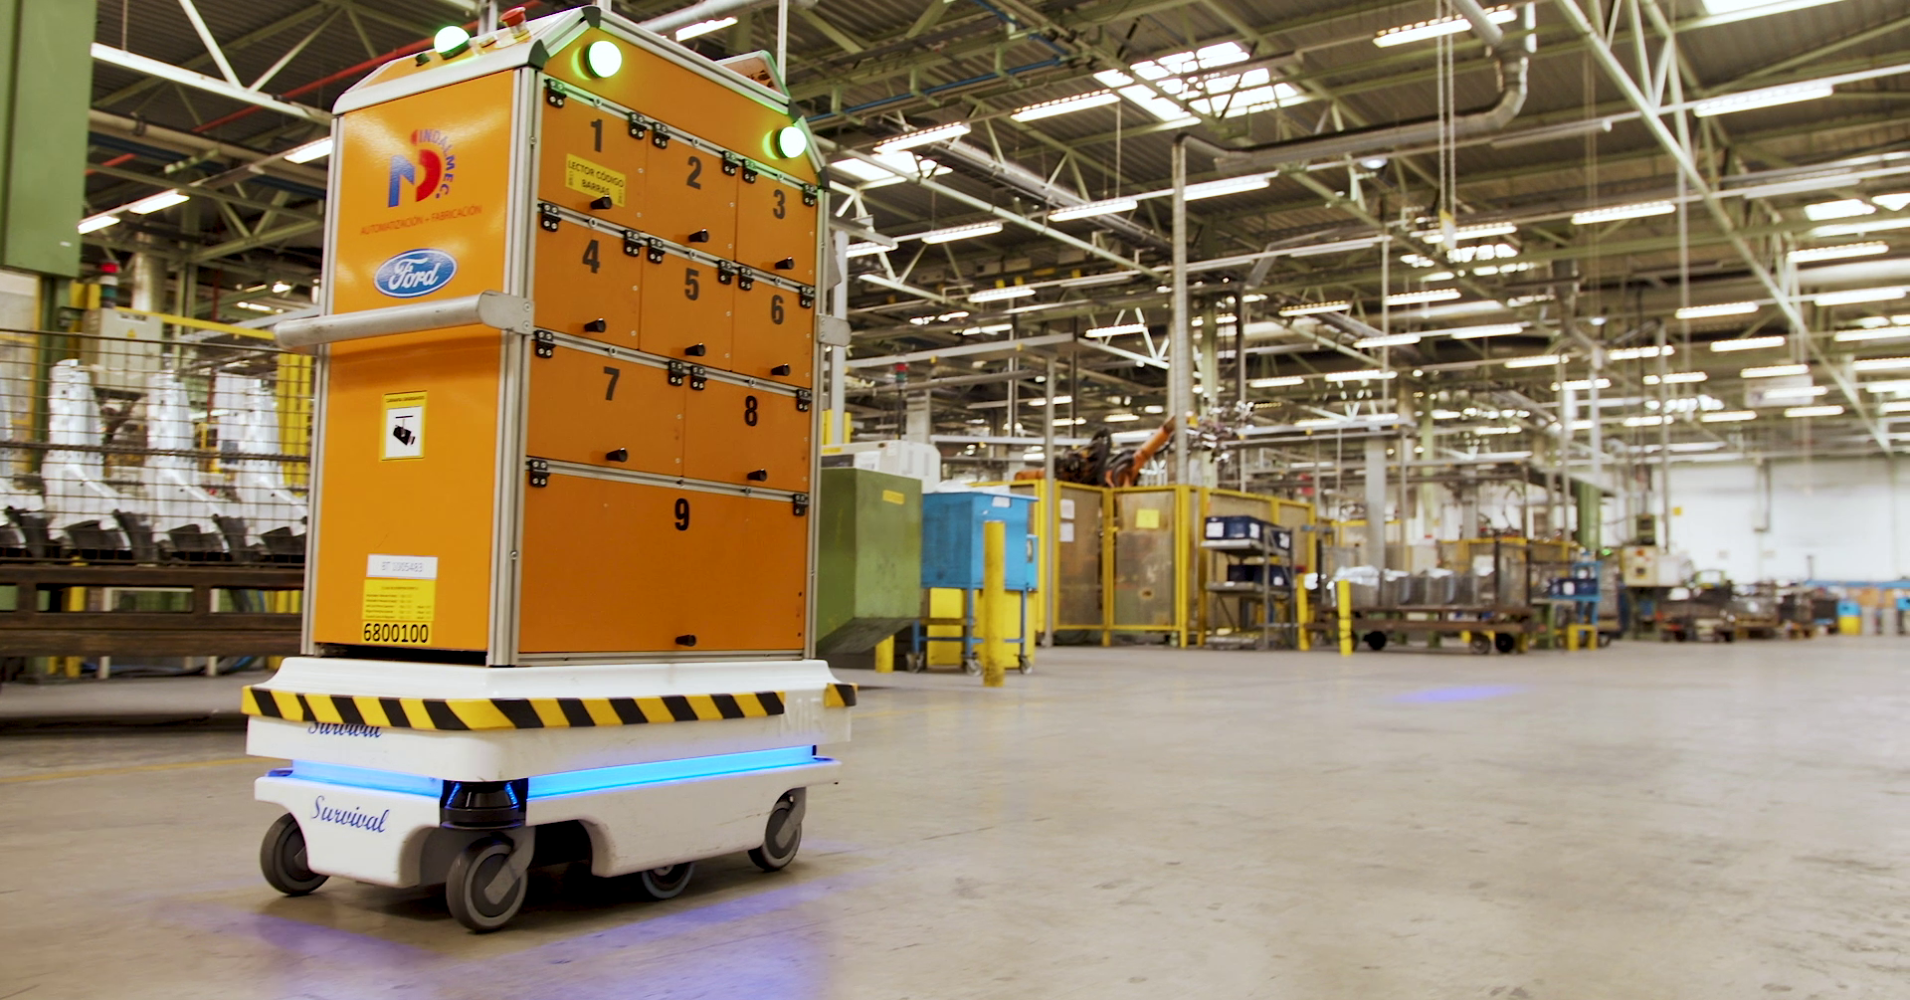 Here's the autonomous robot Ford built. It now works at a factory in Spain